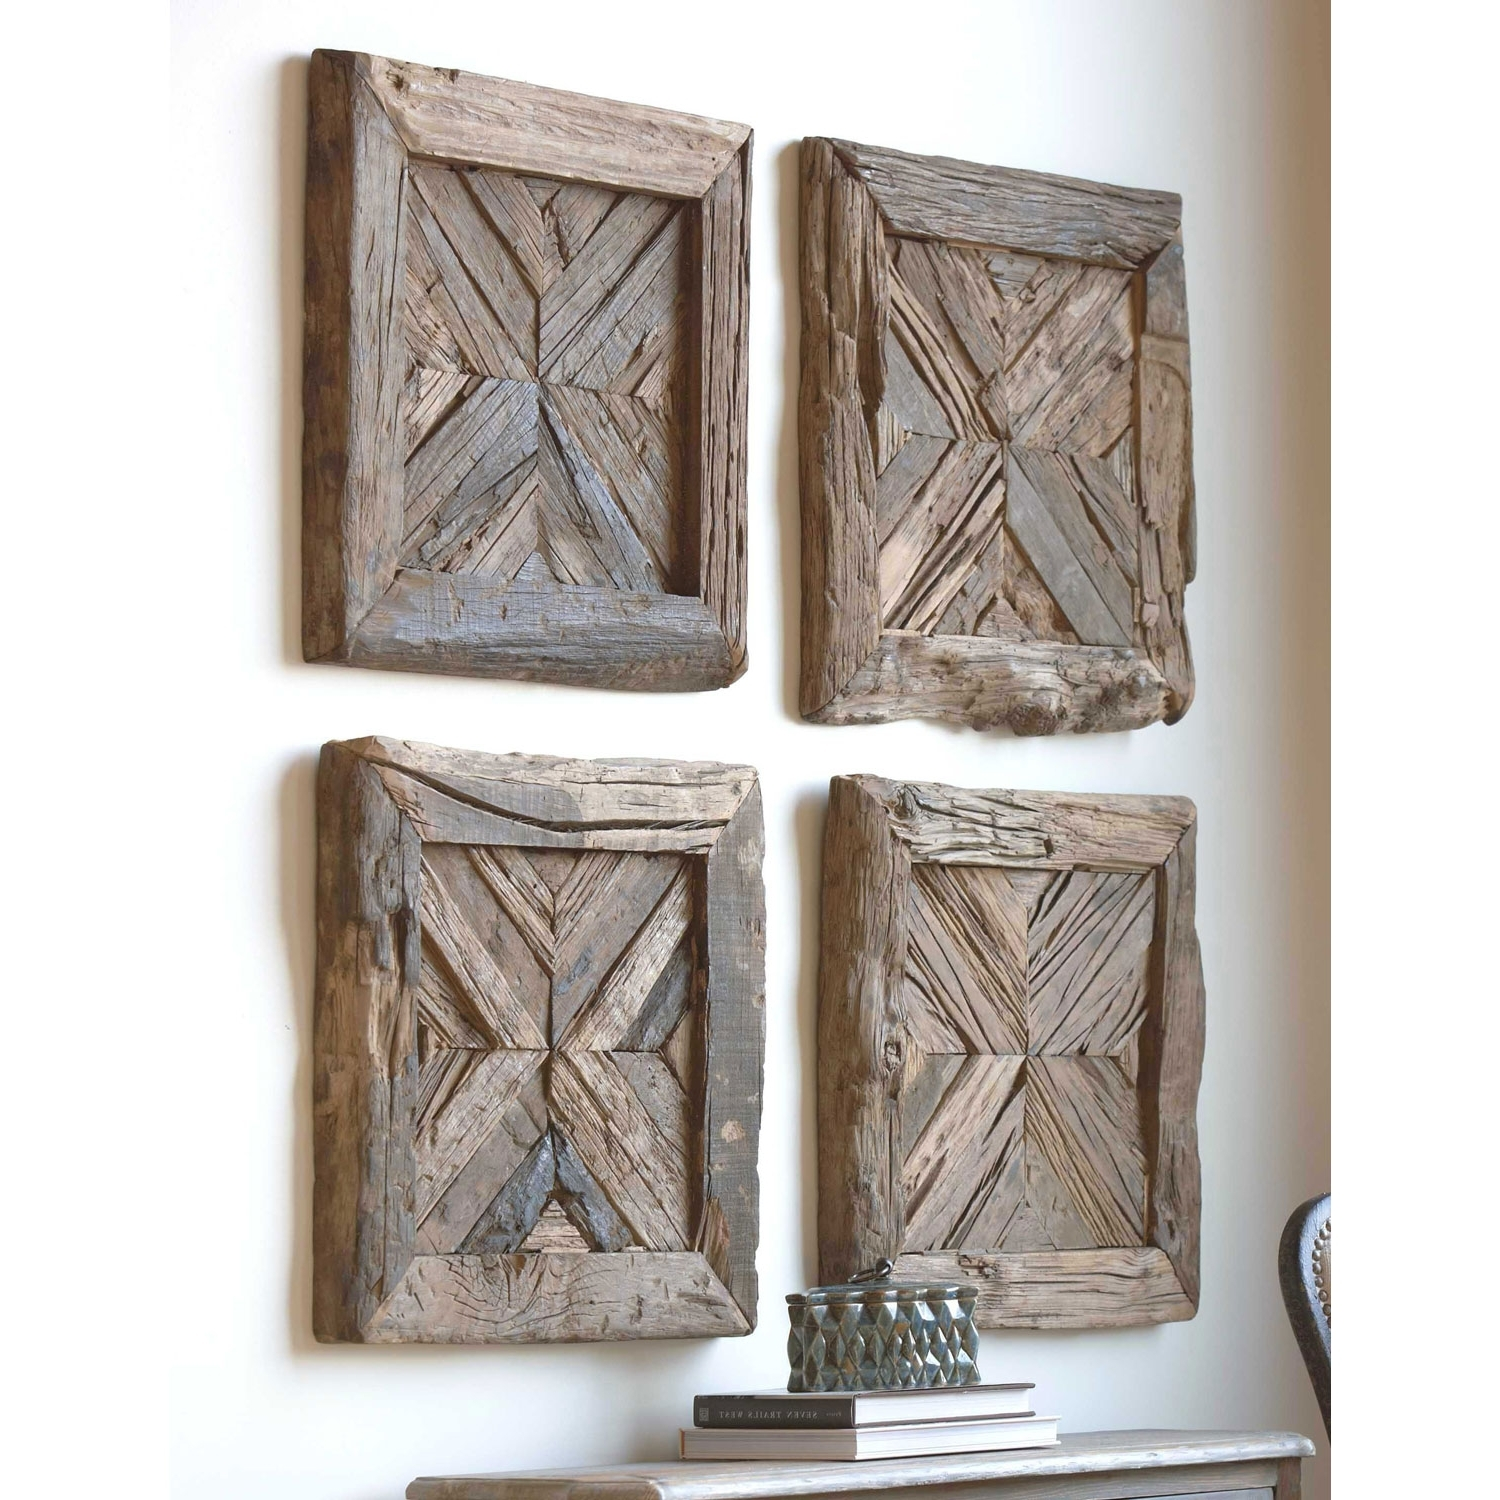 Widely Used Wall Art On Wood Regarding Rennick Rustic Wood Wall Art Uttermost Wall Sculpture Wall Decor (View 13 of 15)